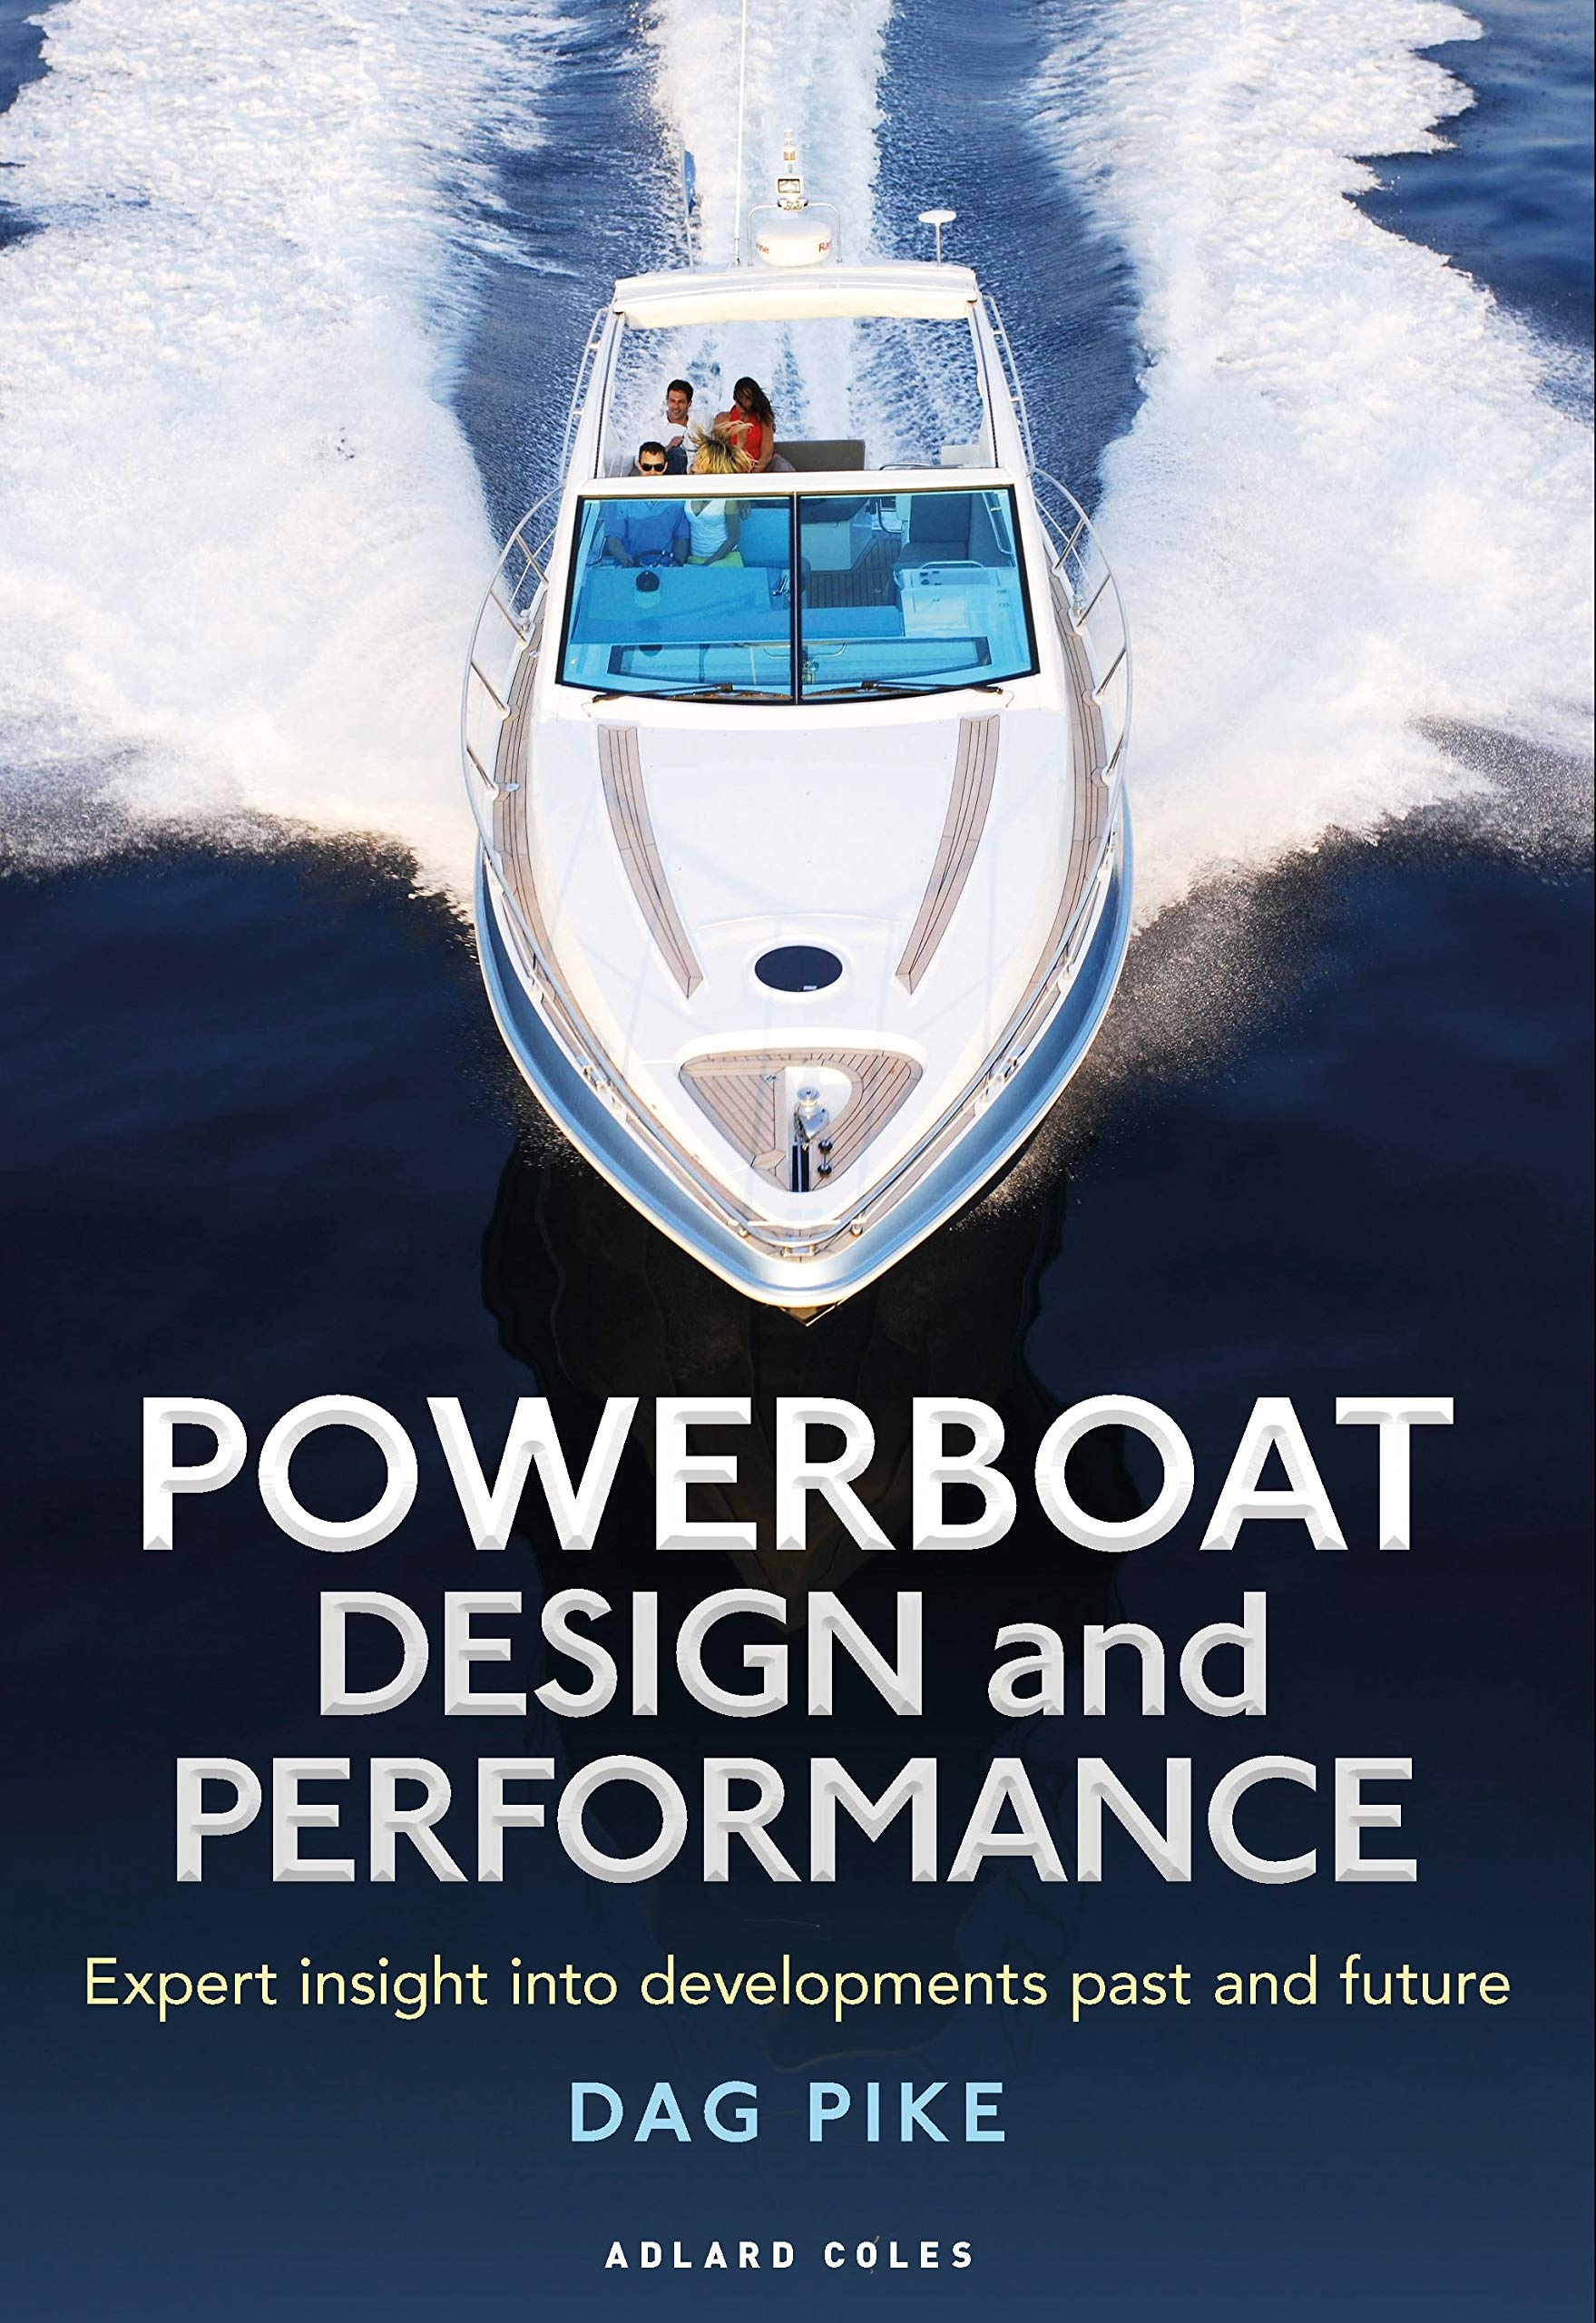 Powerboat Design and Performance: Expert insight into developments past and future by Adlard Coles